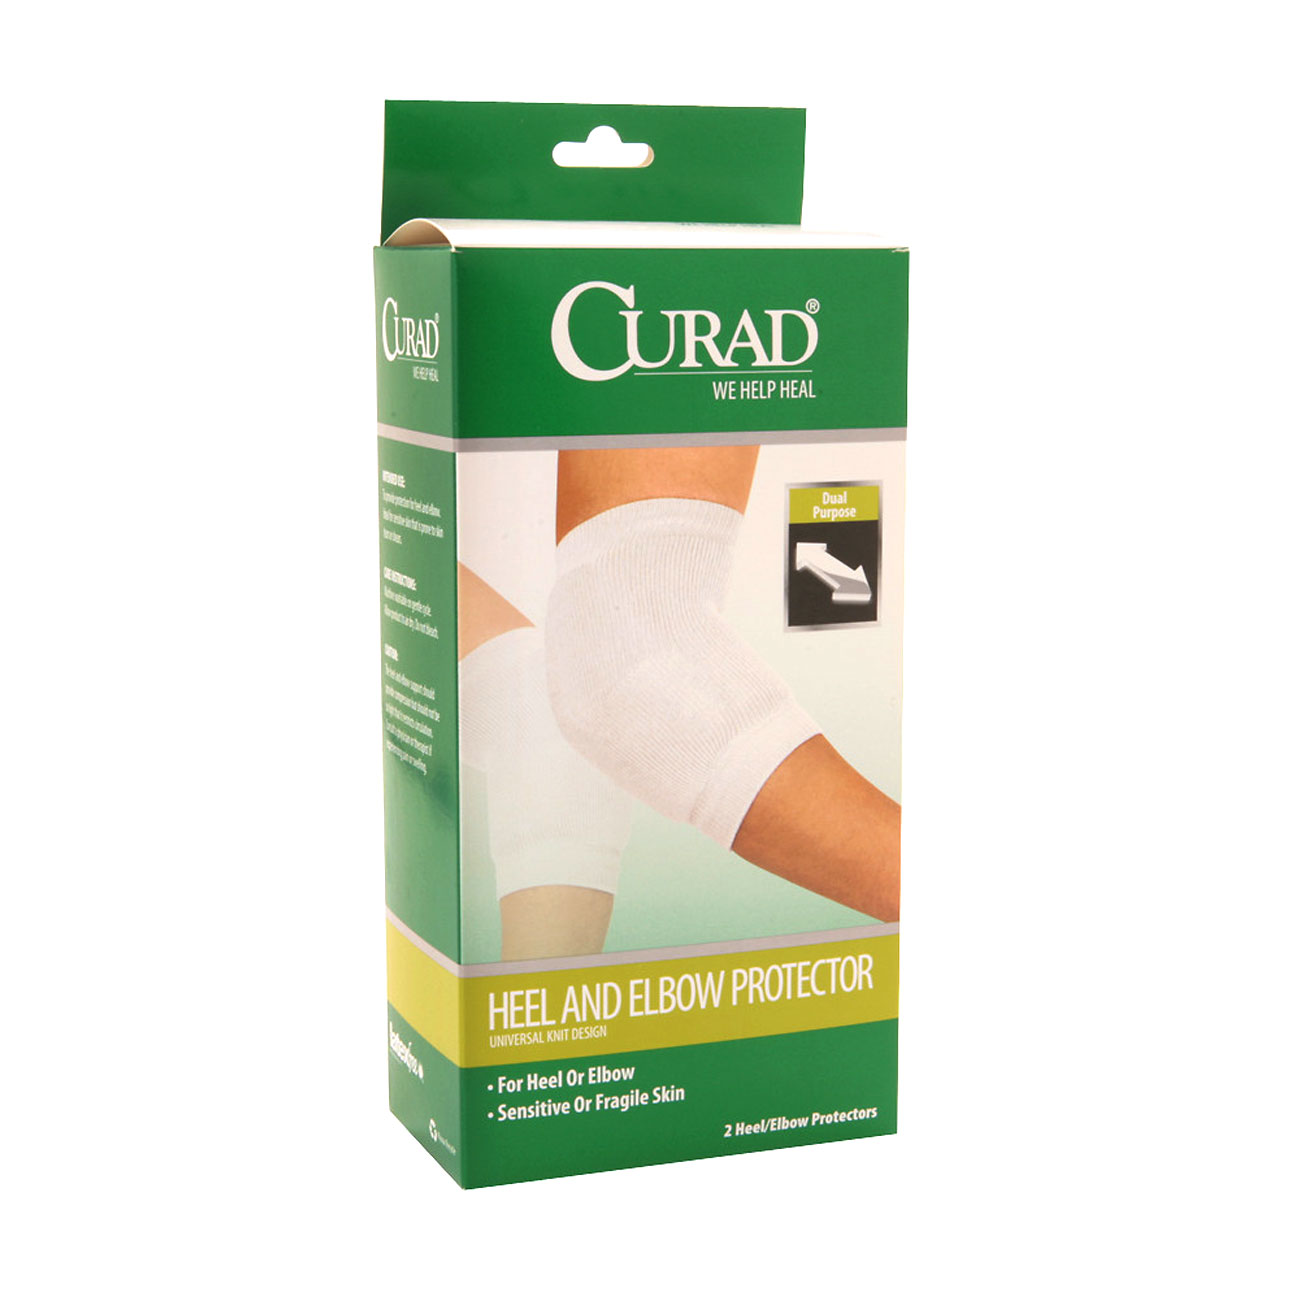 Curad Extensible Knit Heel and Elbow Protector - Universal Size